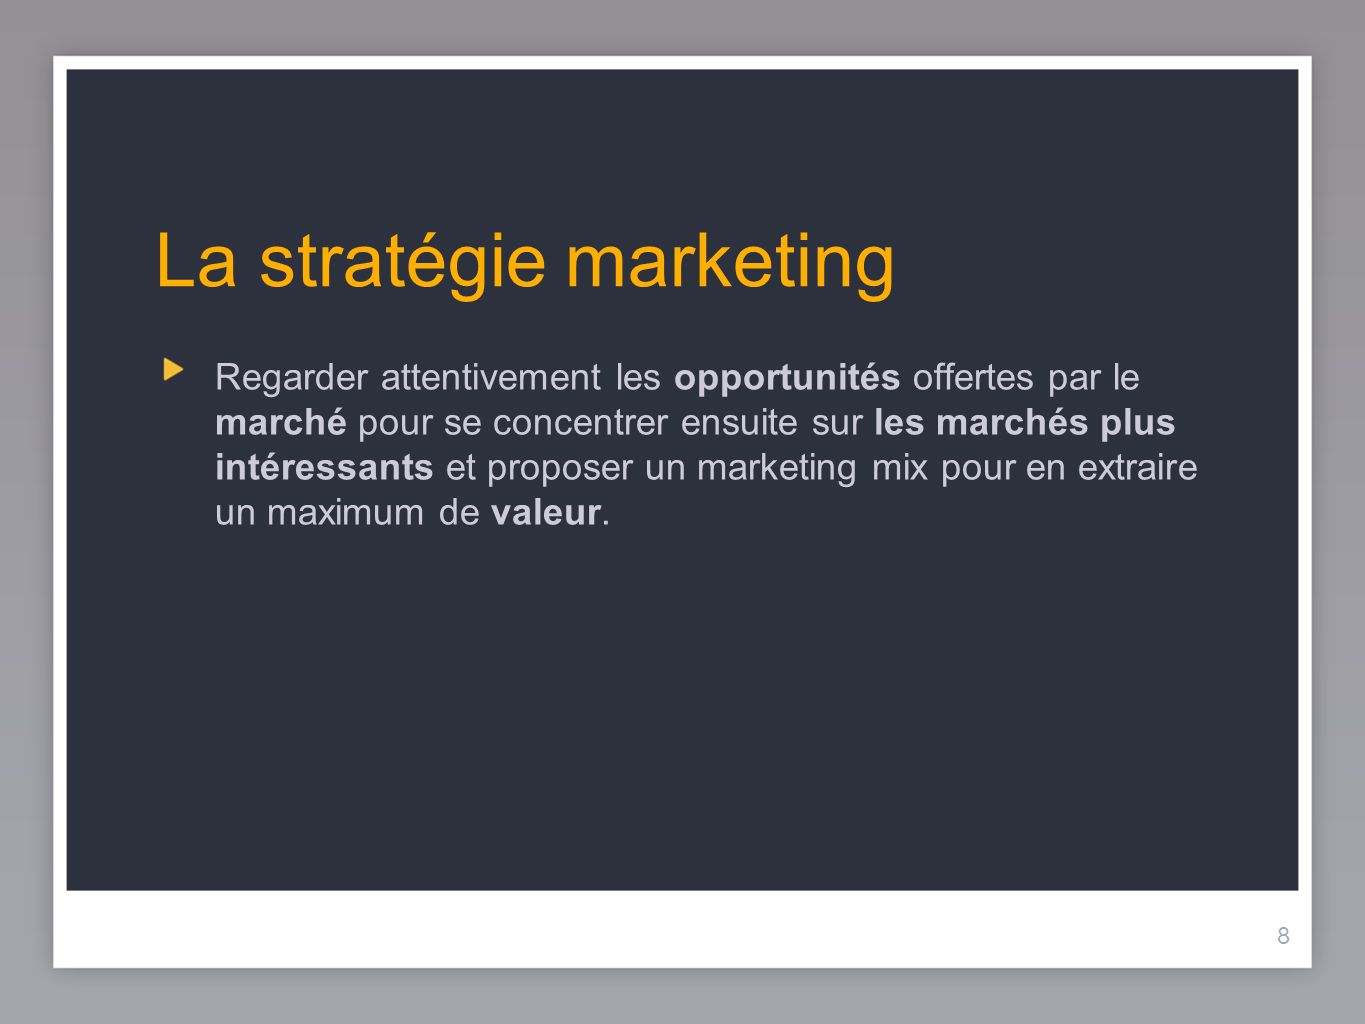 La stratégie marketing